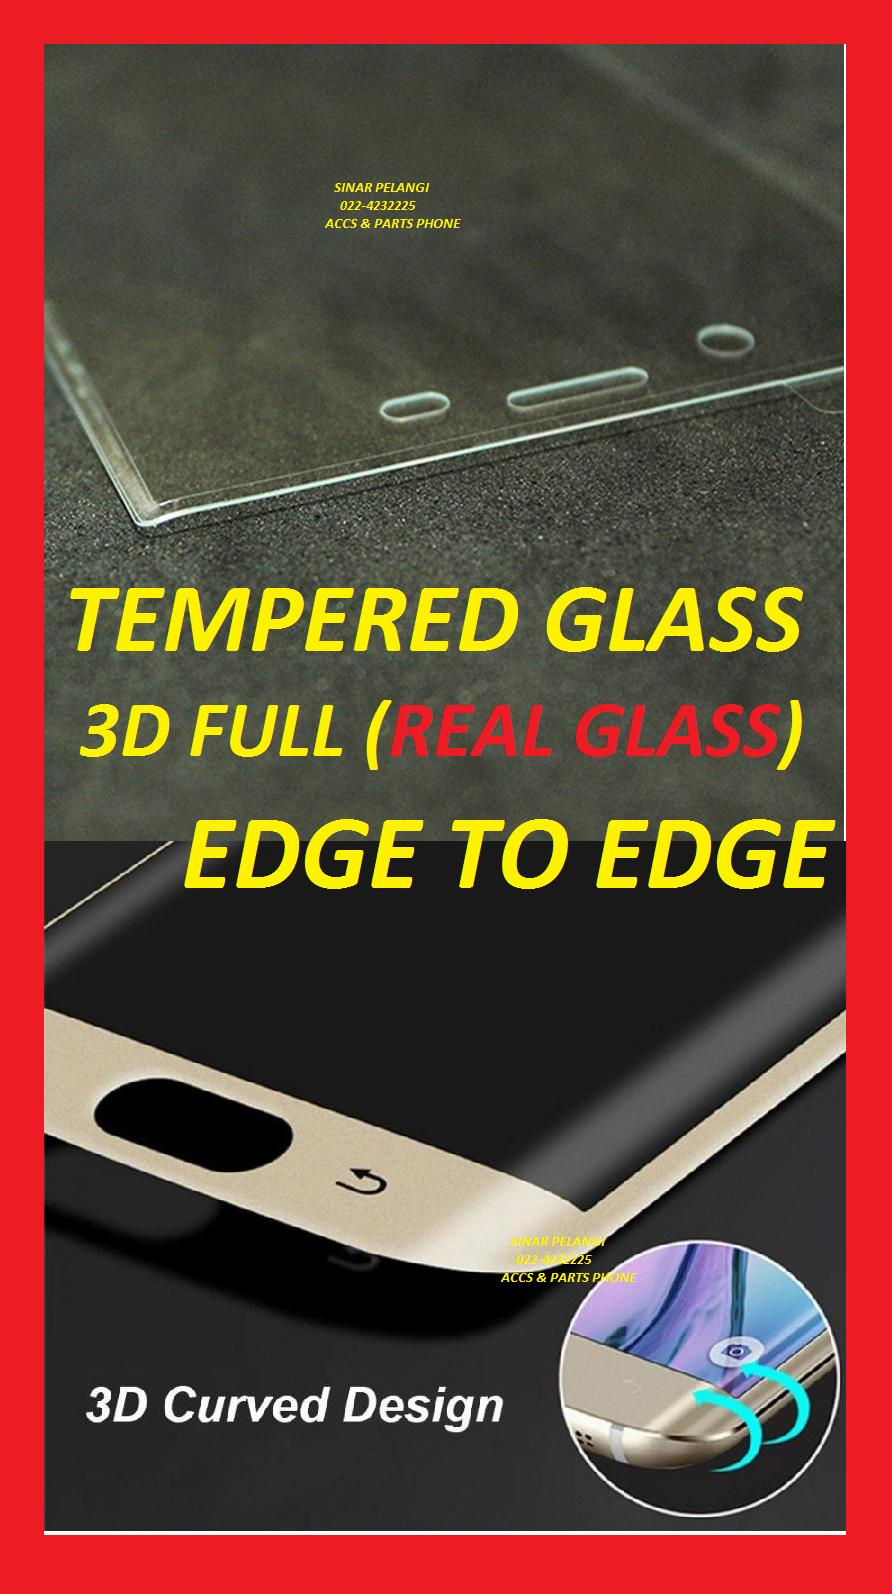 SAMSUNG S8+ S8 PLUS G955 SILVER 3D FULL COVER CURVED CURVE 2.5D ROUND EDGE TO EDGE LENGKUNG CEKUNG ANTI GORES TEMPERED TEMPER GLASS KACA HIFI 906073